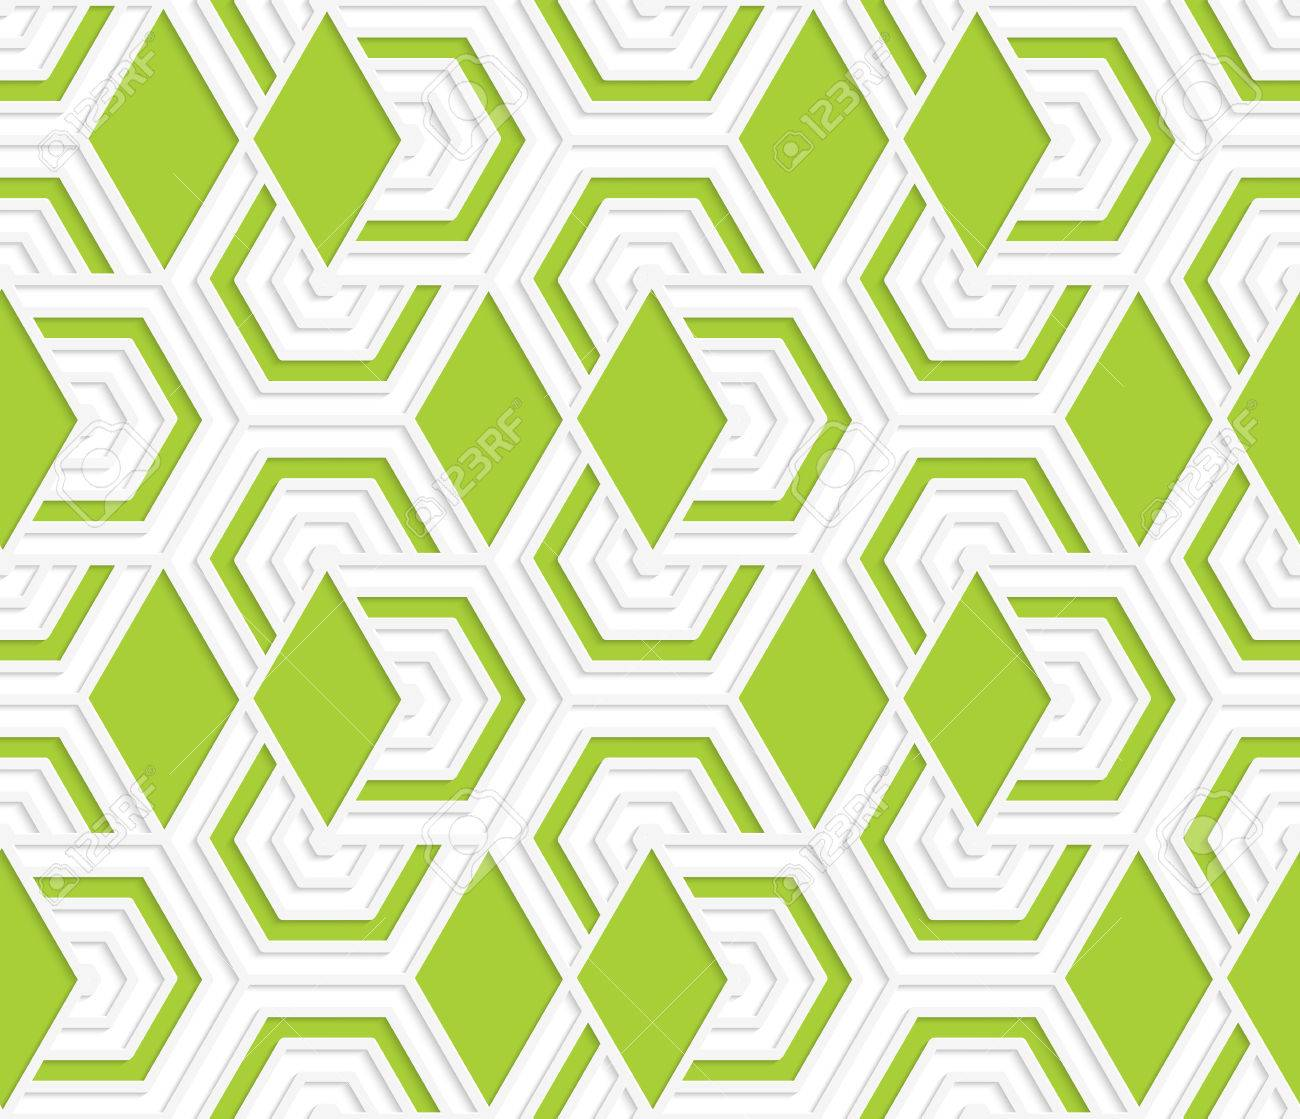 Colored 3D overlapping with green diamonds hexagons .Seamless geometric background. Modern 3D texture.